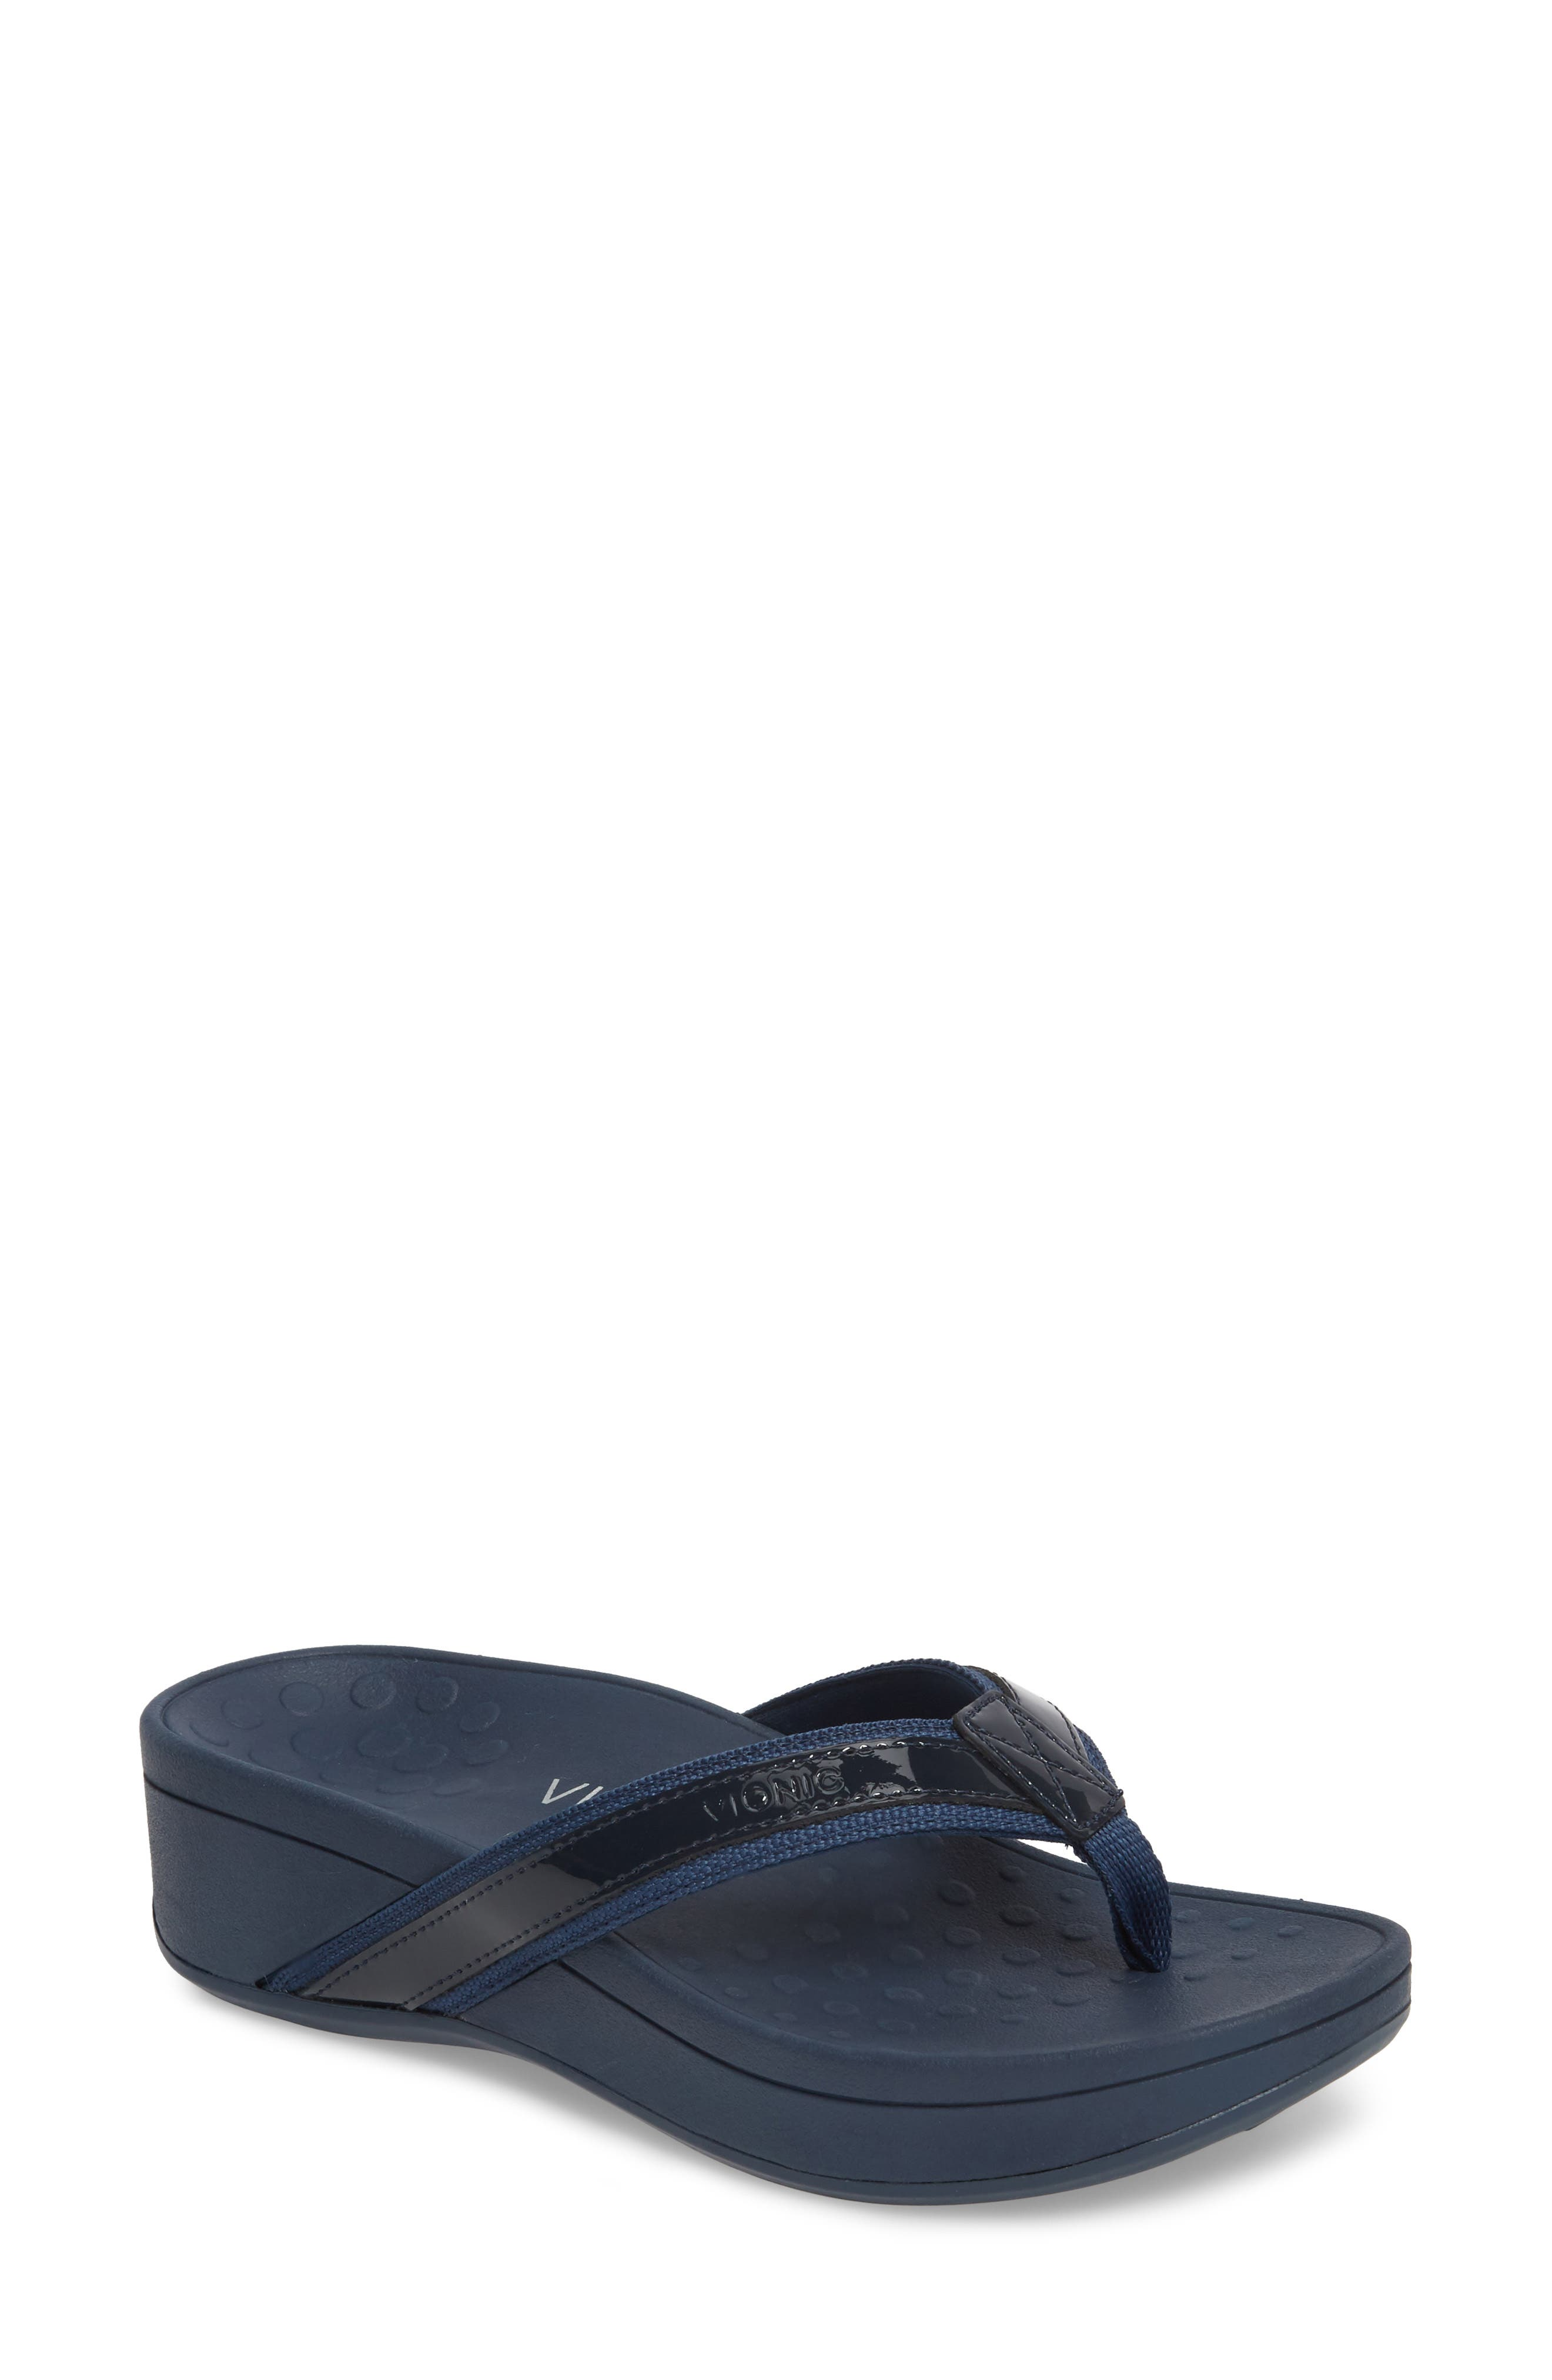 ,                             High Tide Wedge Flip Flop,                             Main thumbnail 1, color,                             NAVY TEXTILE LEATHER